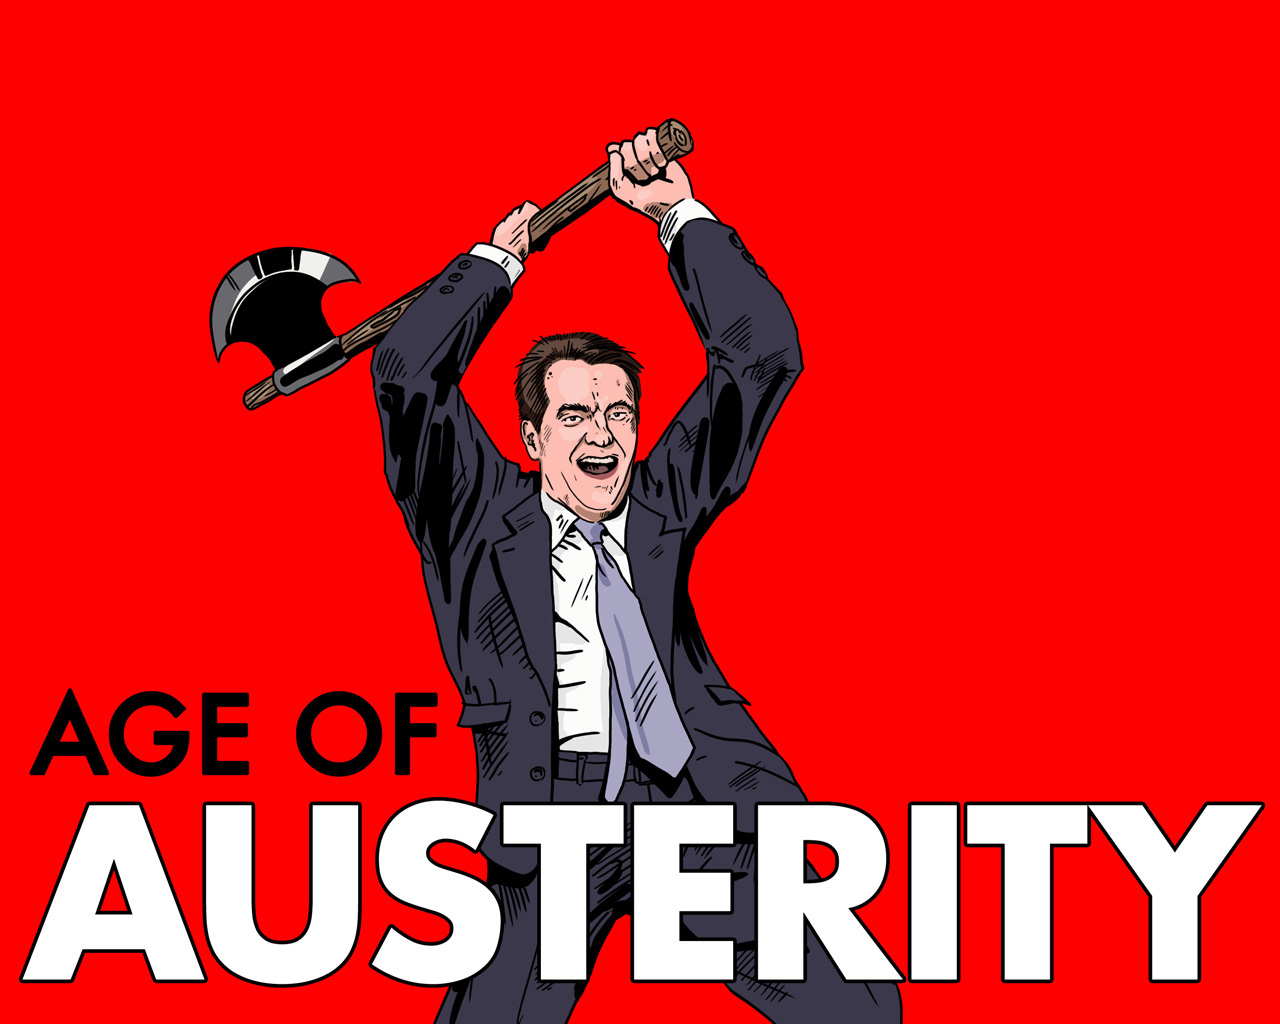 Rage Against Austerity